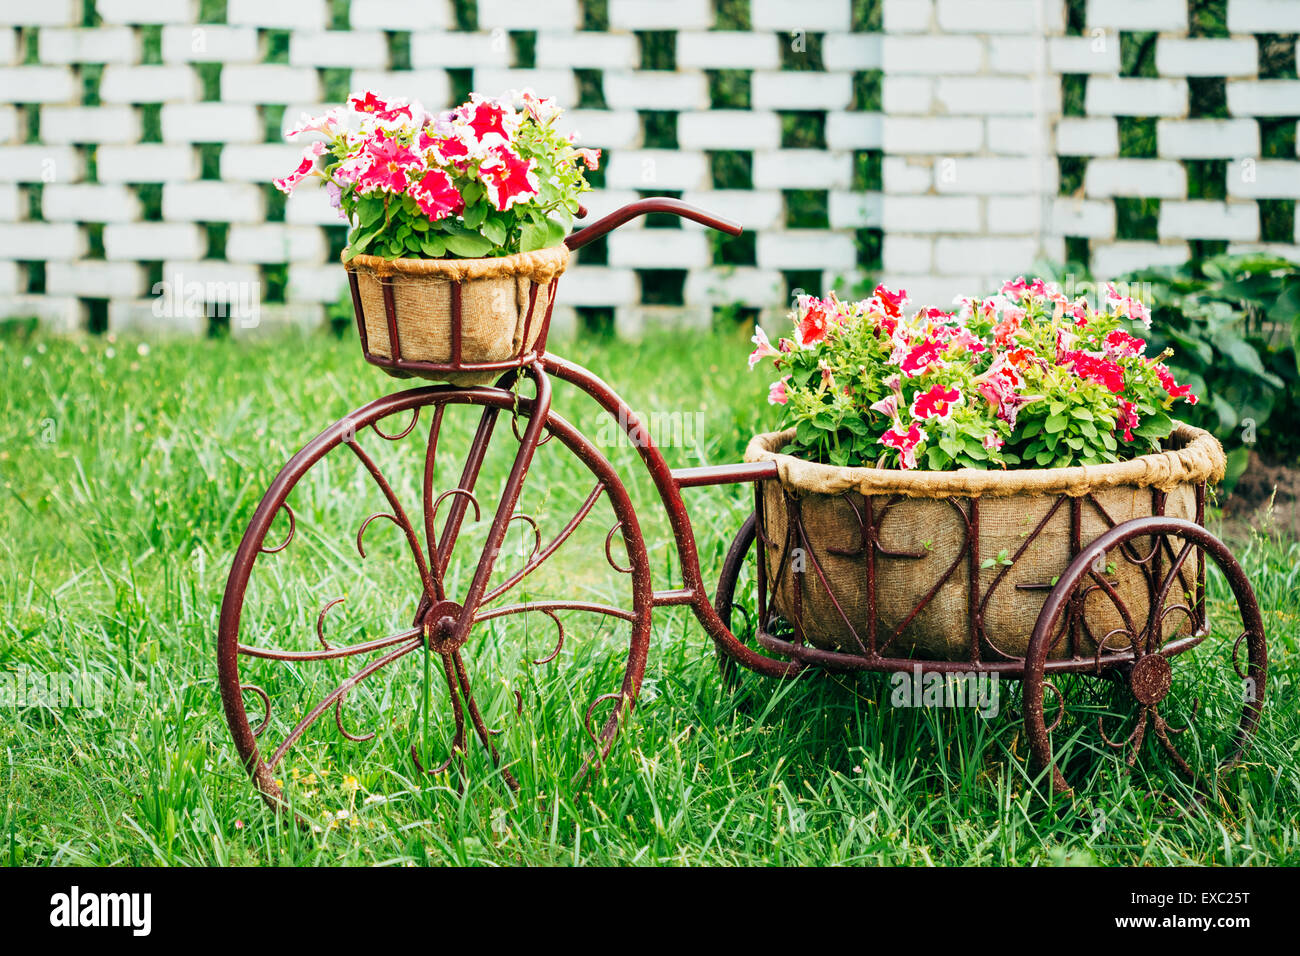 Decorative Vintage Model Old Bicycle Equipped Basket Flowers Garden ...